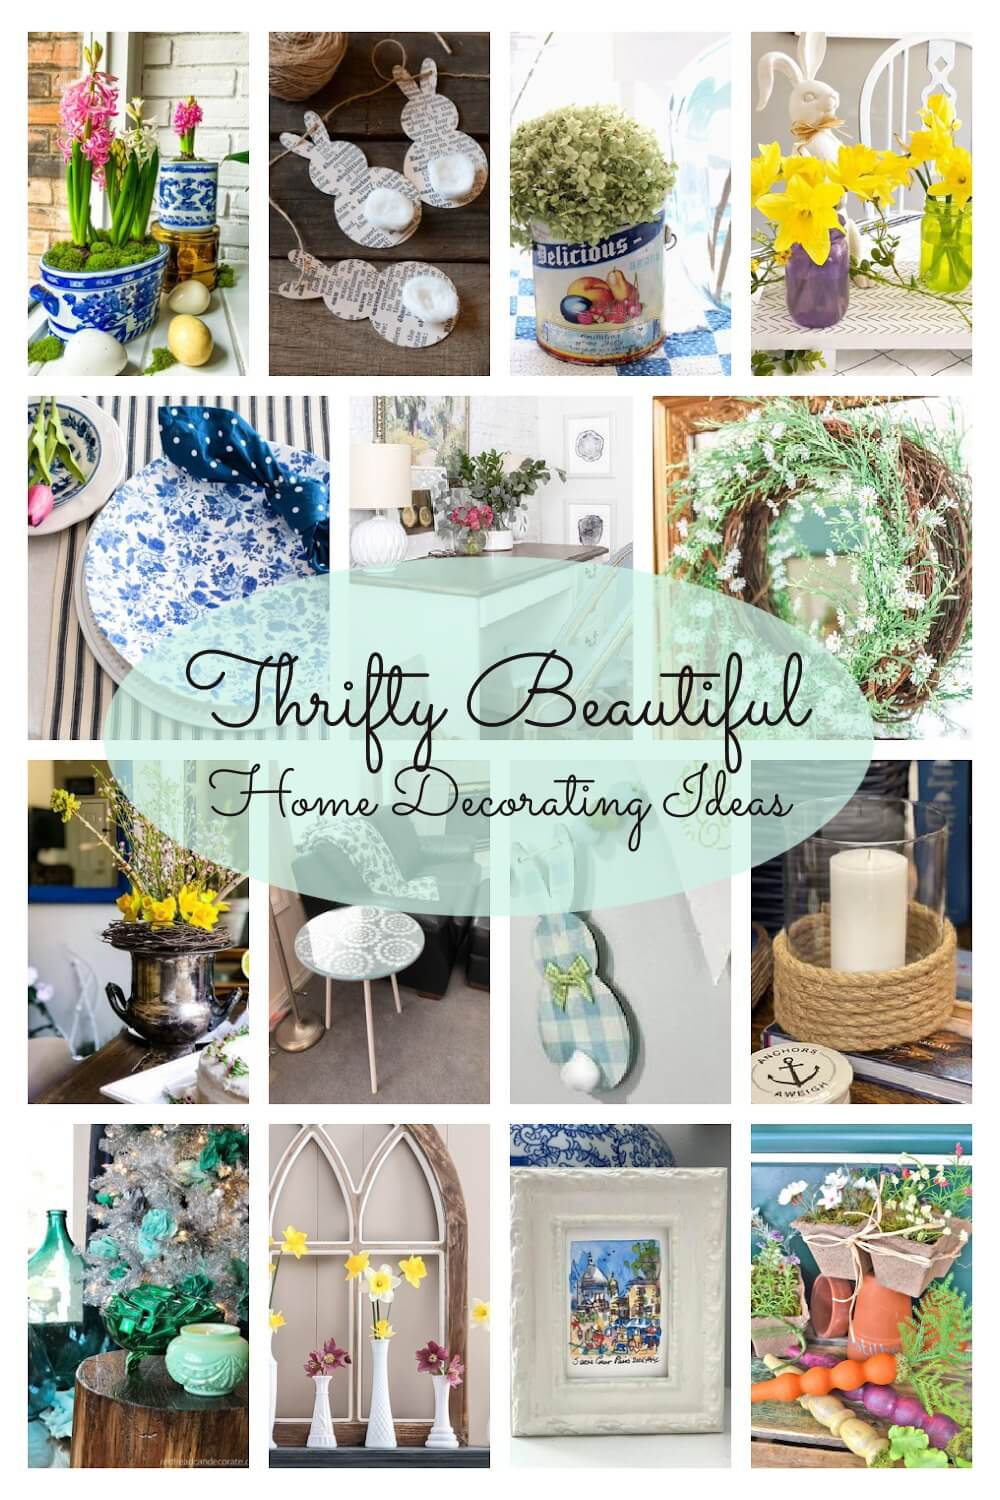 Check out this collection of thrifty and beautiful home decorating ideas!